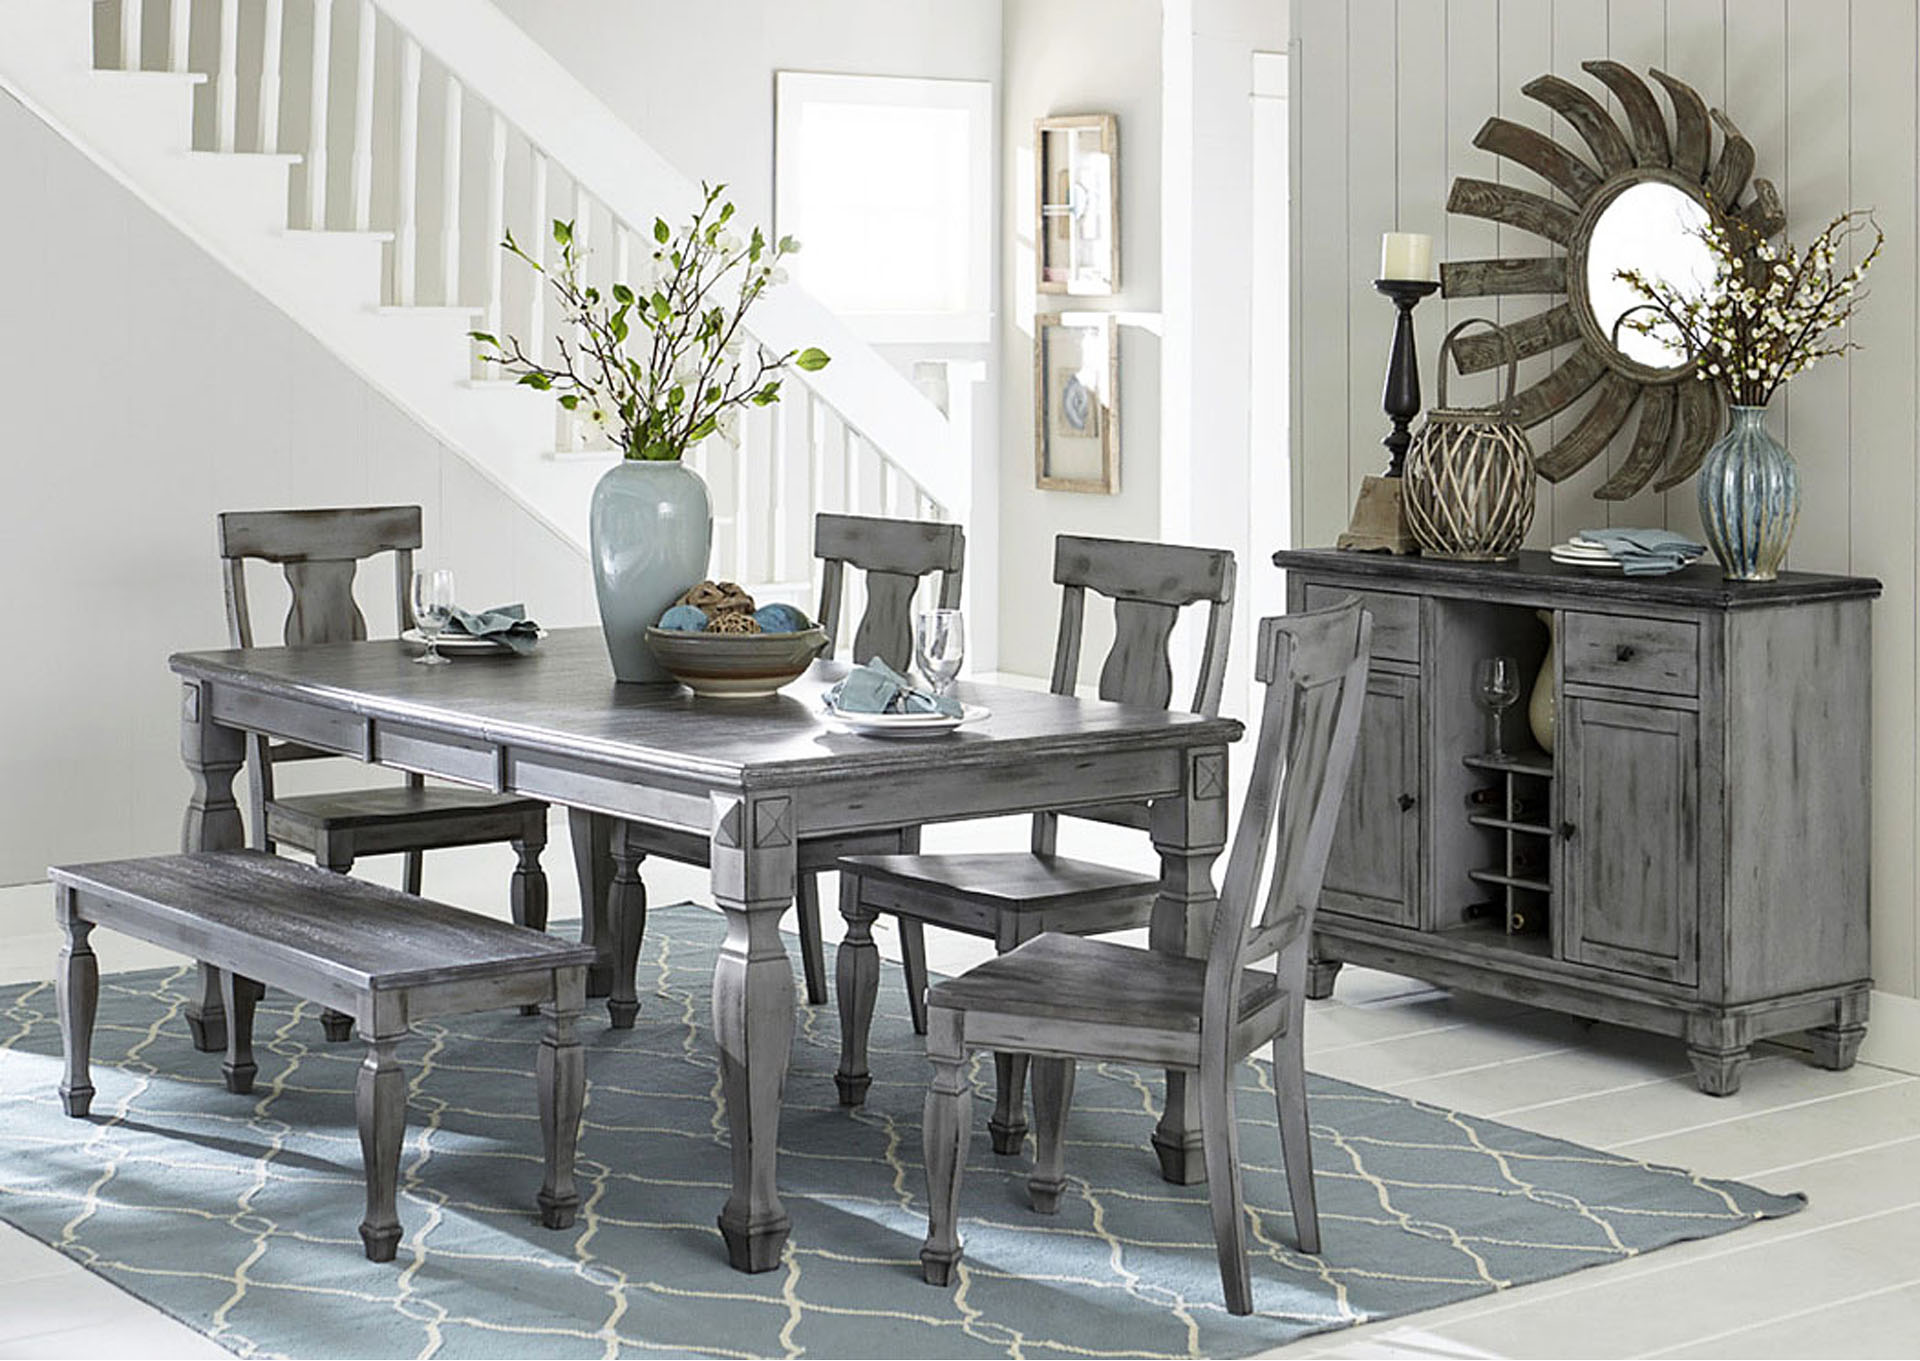 Dining Table W/4 Side Chairs U0026 Bench,Homelegance